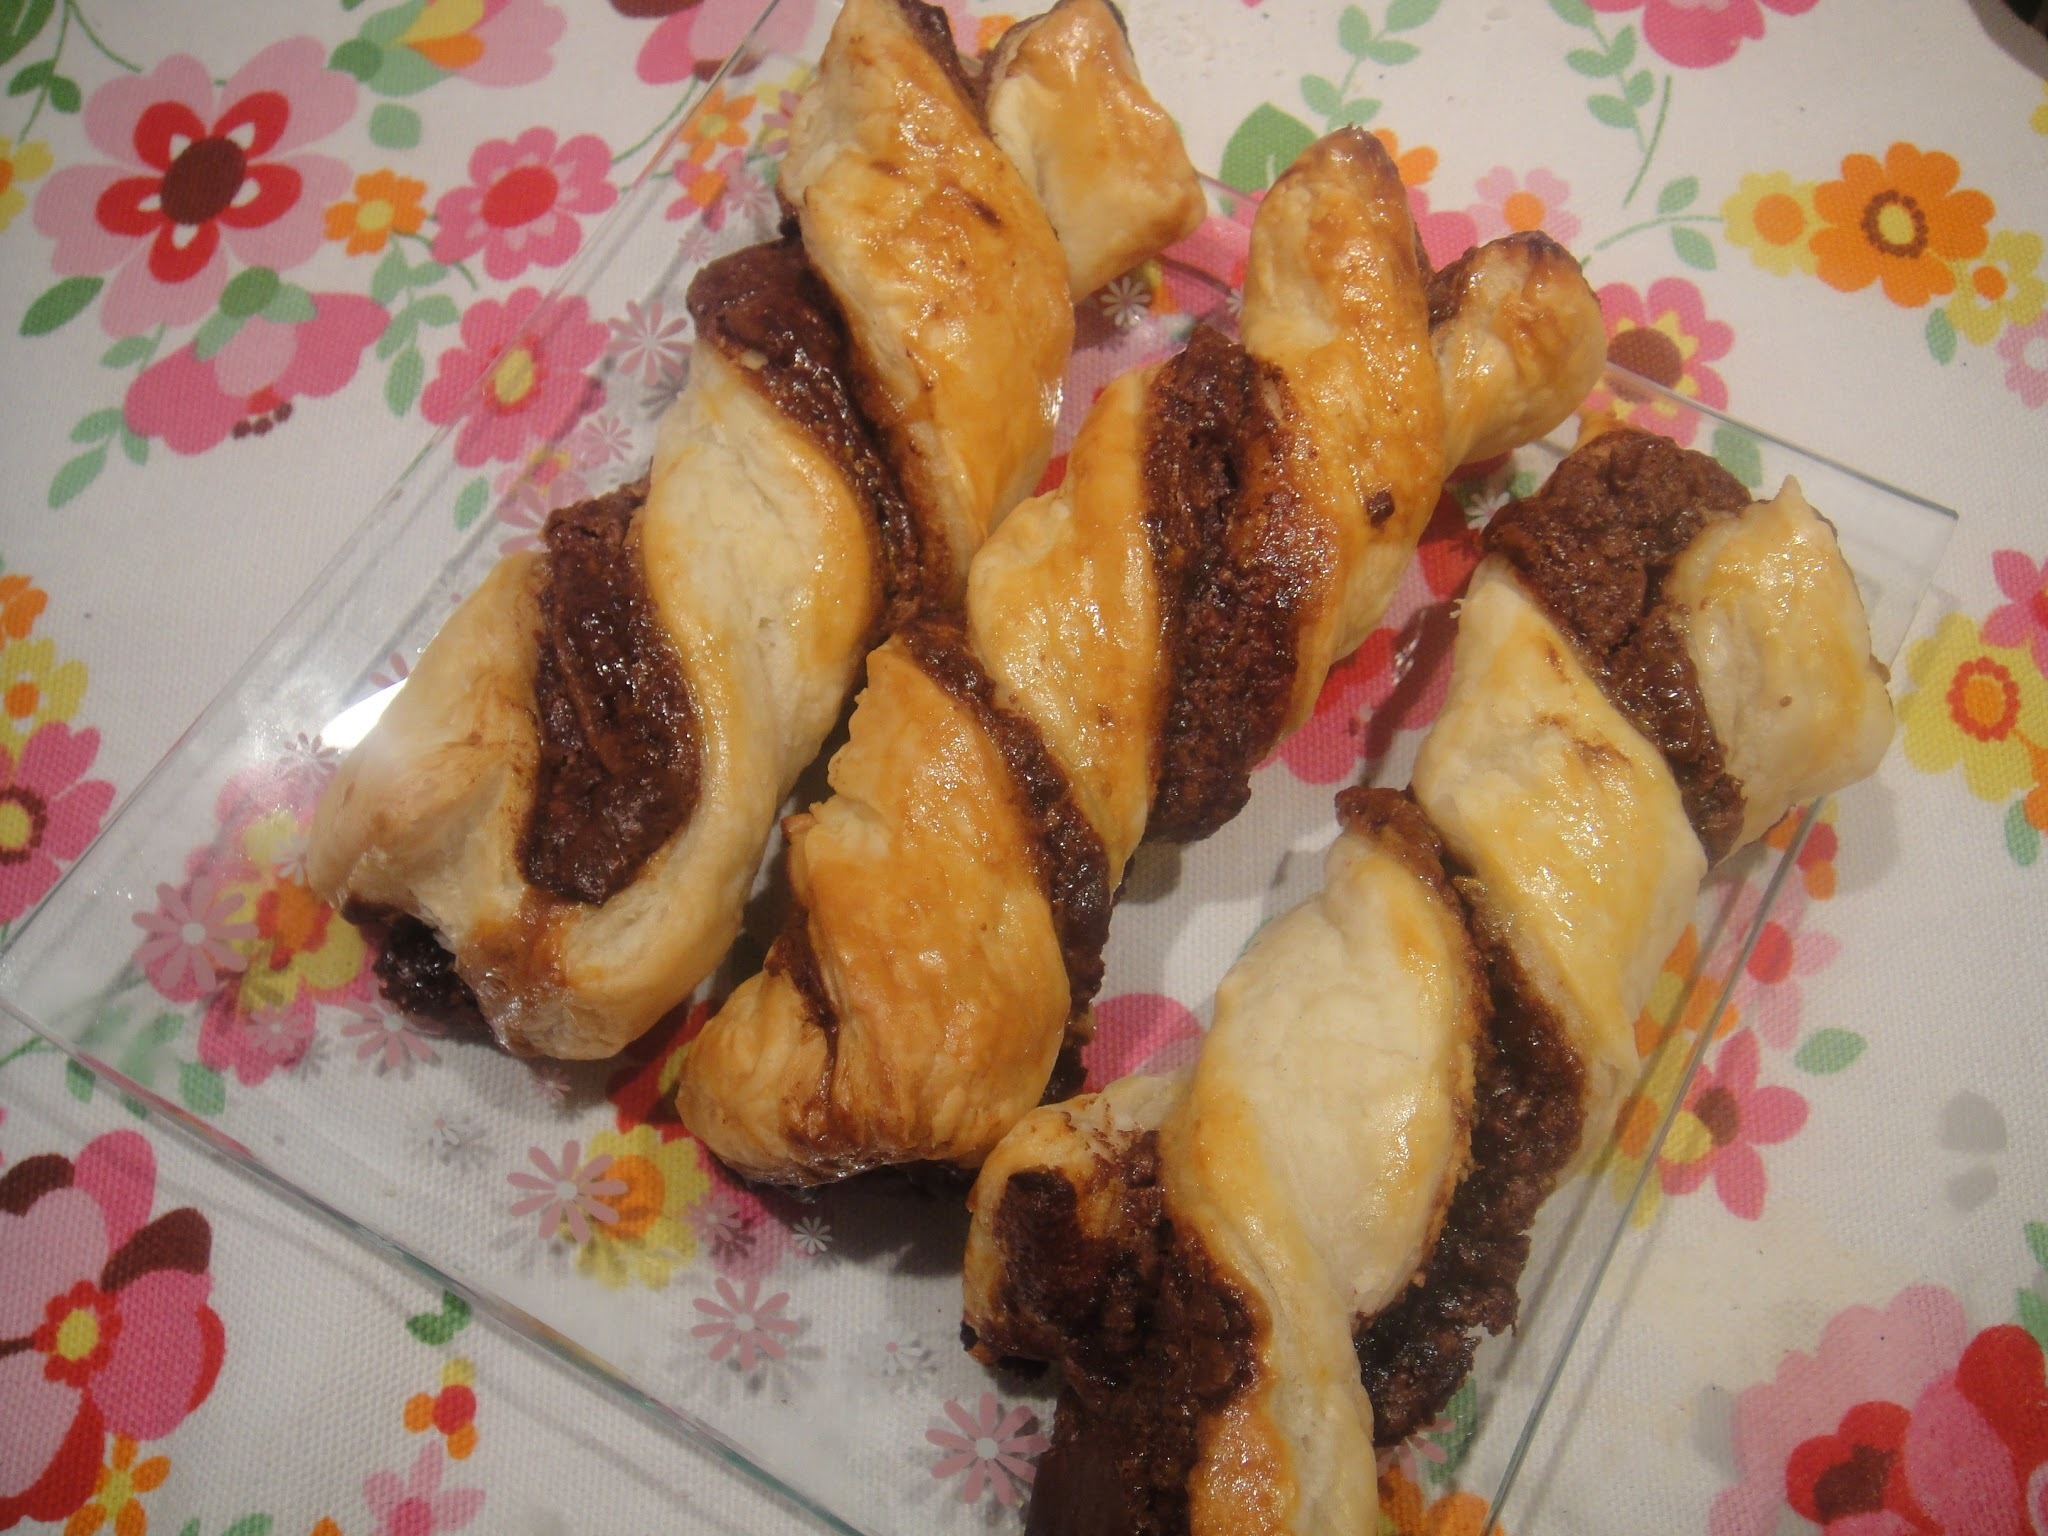 Chocolate and Cheese twist